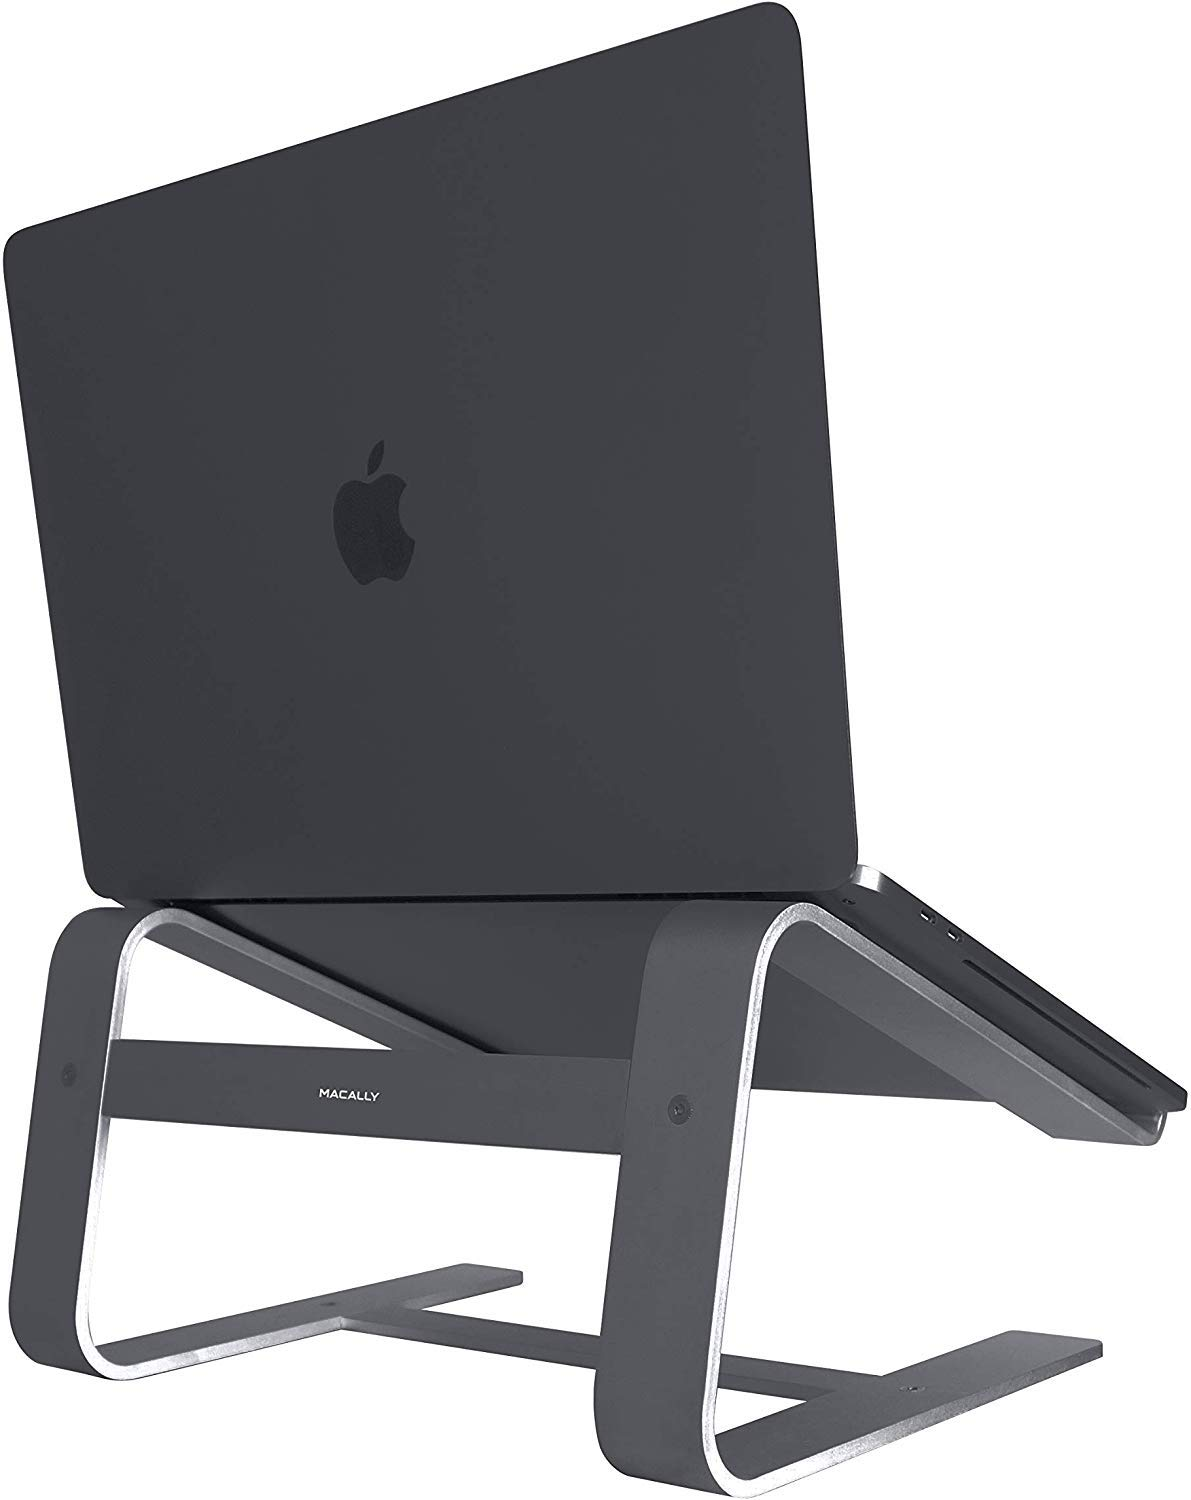 "Macally Aluminum Laptop Stand for Home & Office Desks - Fits All Notebooks from 10"" to 17.3"" - Apple Macbook 12"" 13"" Pro Air, Chromebook, Samsung, Acer, HP, Dell Computers (Space Gray)"